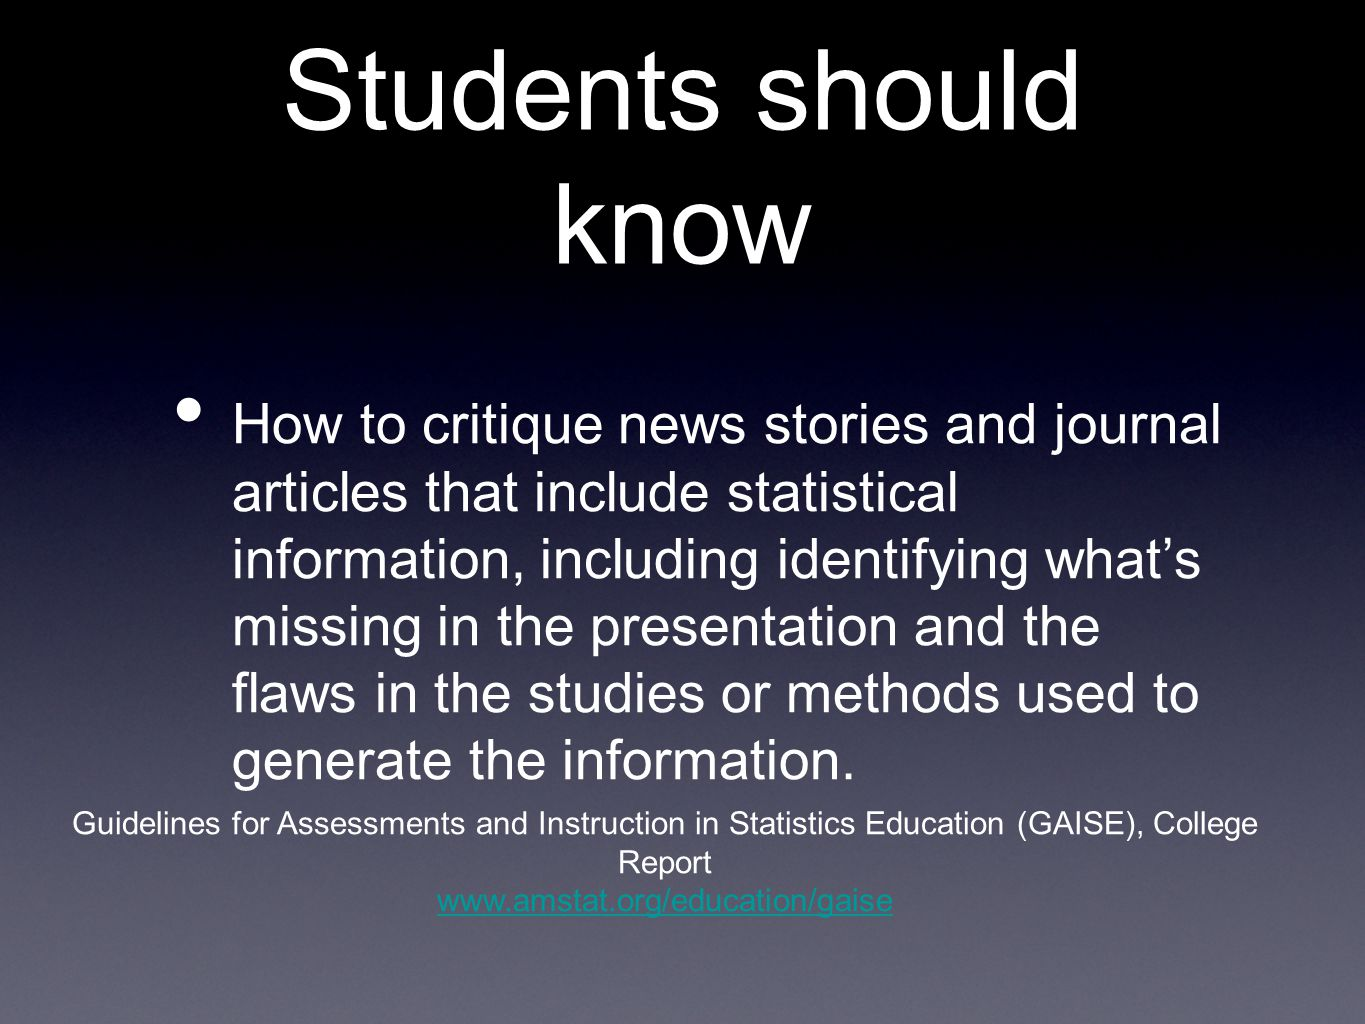 Students should know How to critique news stories and journal articles that include statistical information, including identifying what's missing in the presentation and the flaws in the studies or methods used to generate the information.